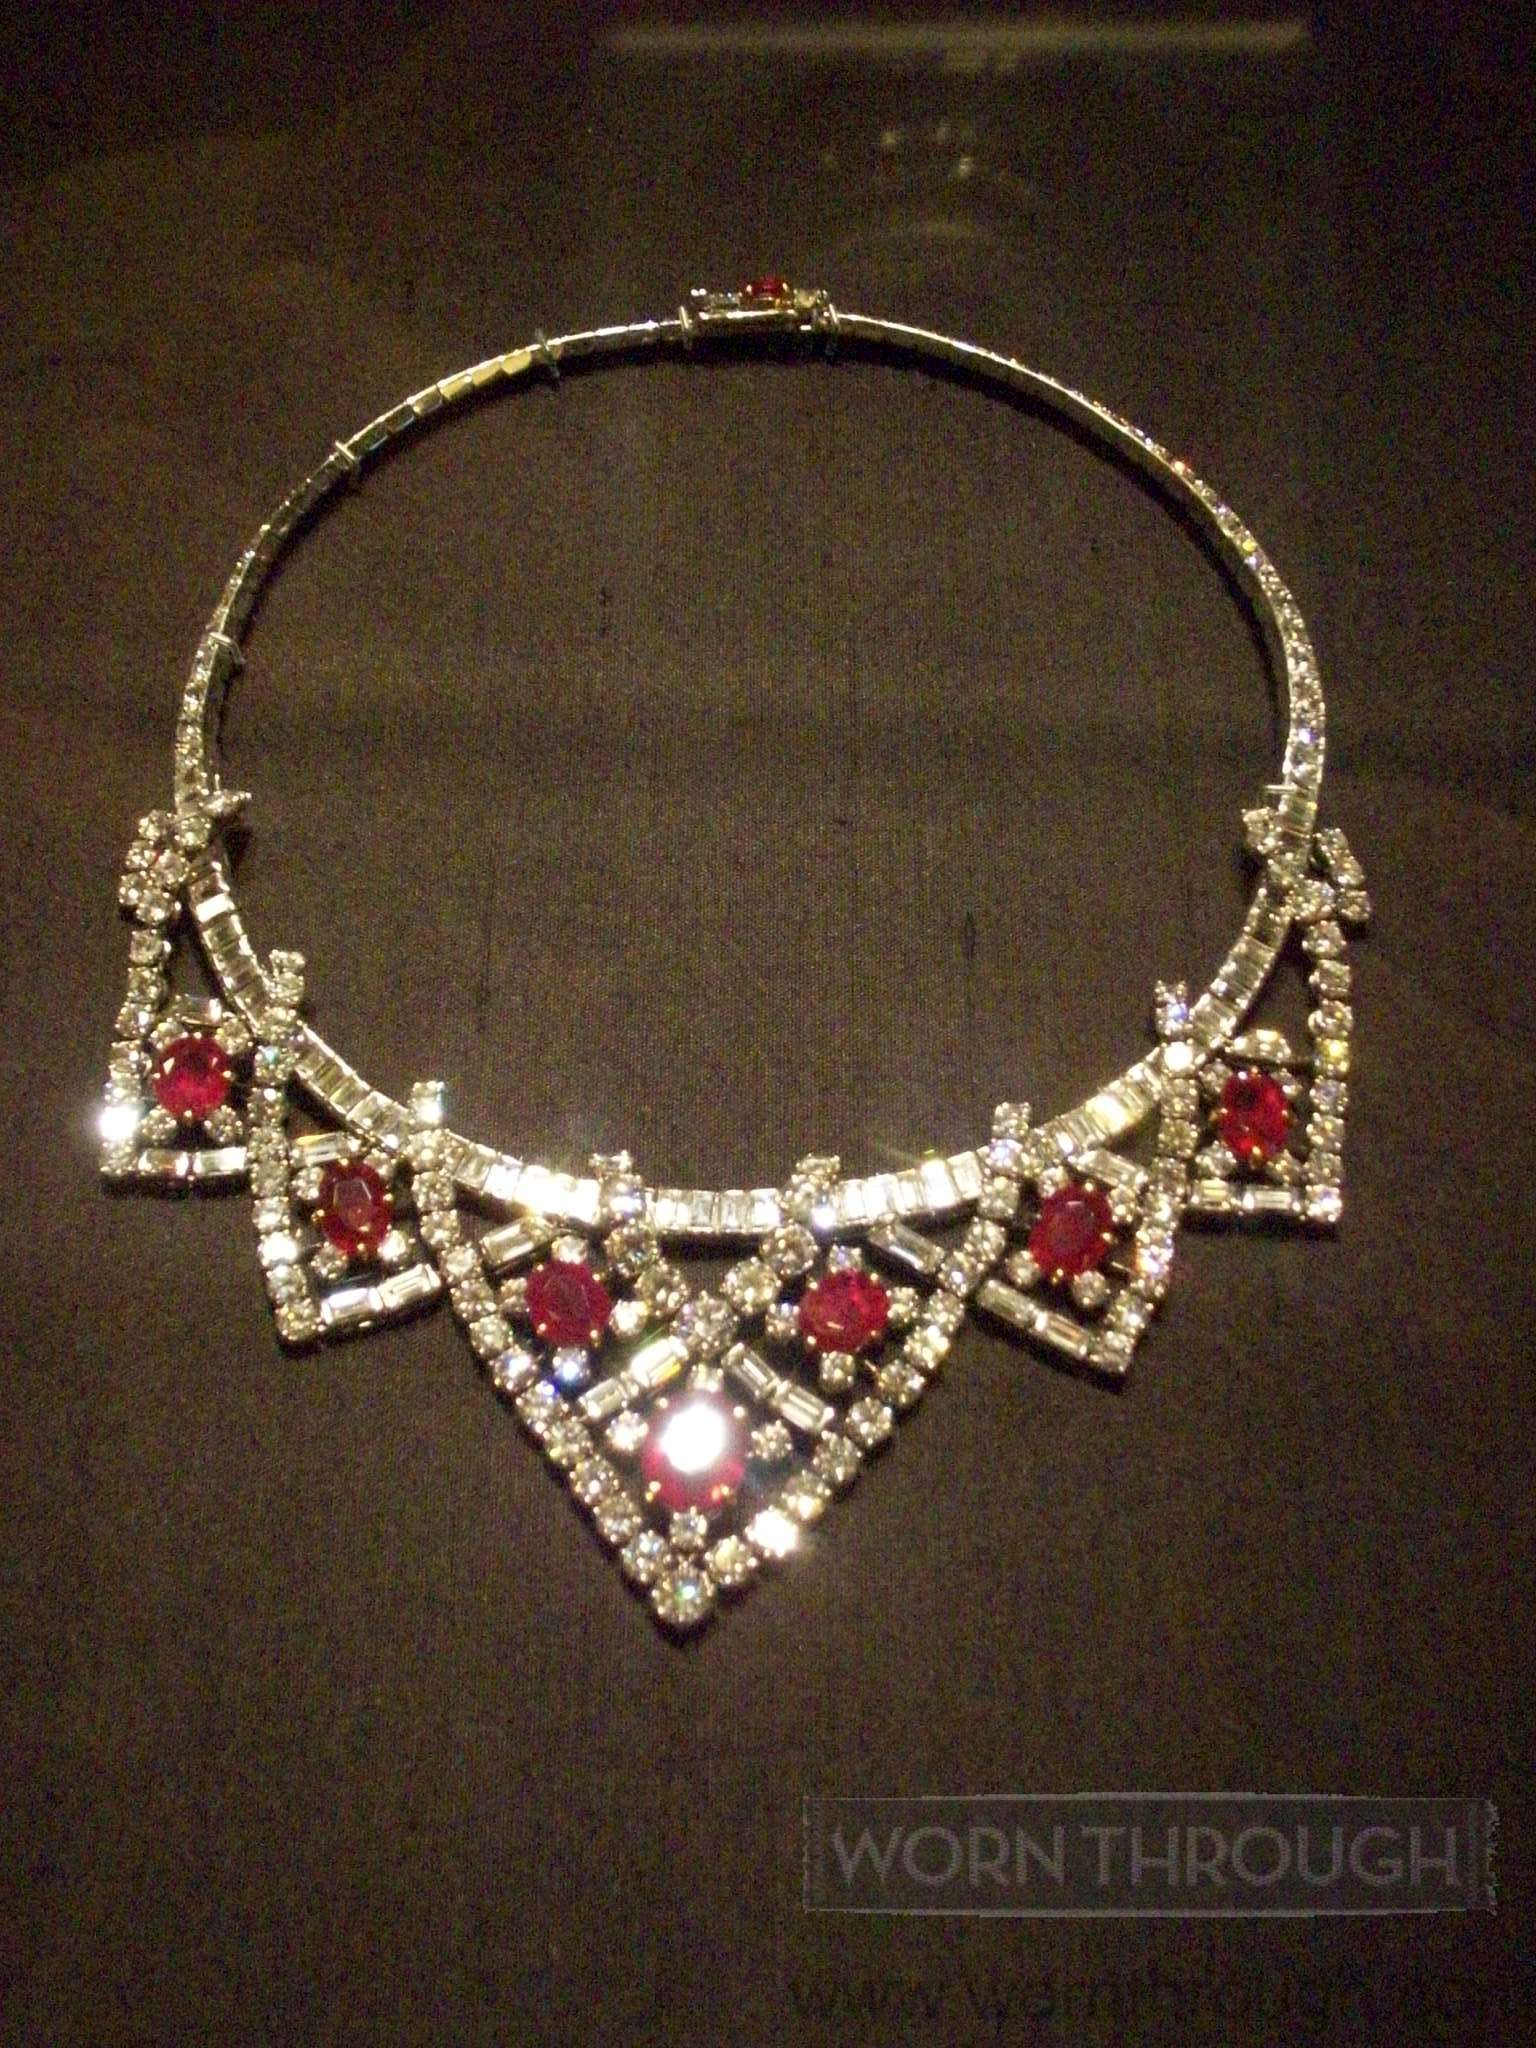 Necklace, Cartier Paris, 1951. Rubies, diamonds, and platinum. Sold to Mike Todd in 1957. Collection of Dame Elizabeth Taylor. Photograph by Heather Vaughan